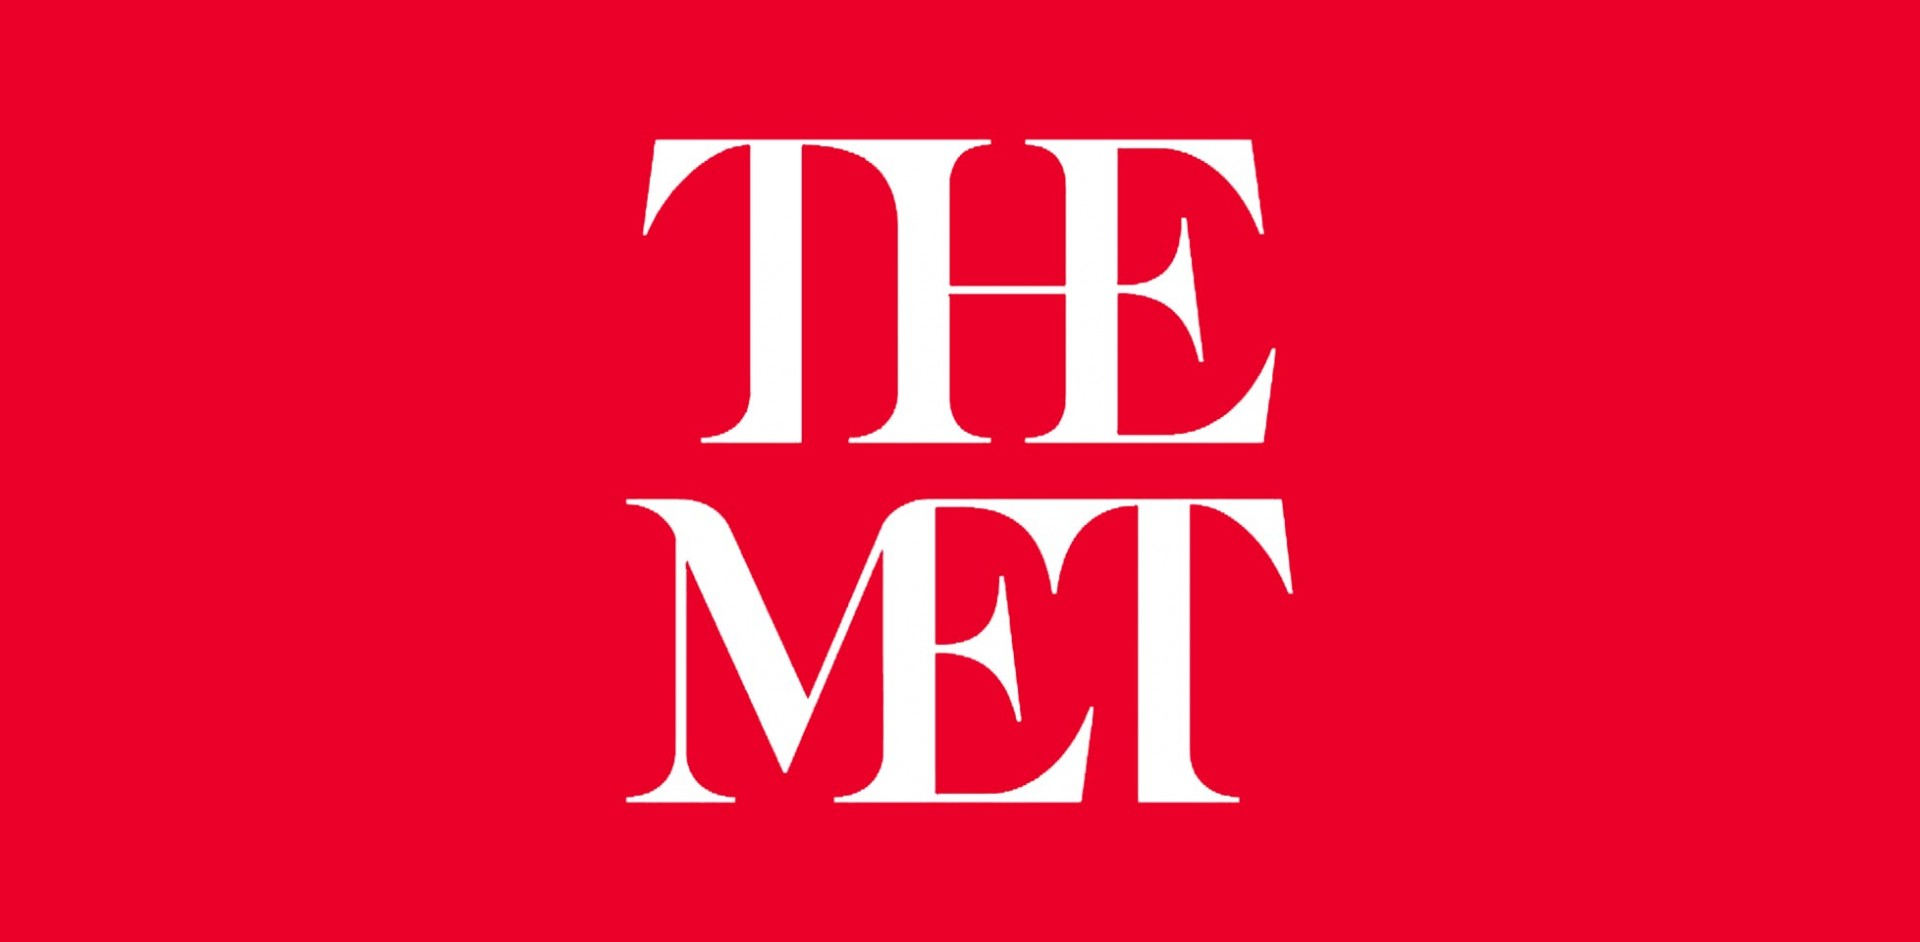 The Met's new logo.